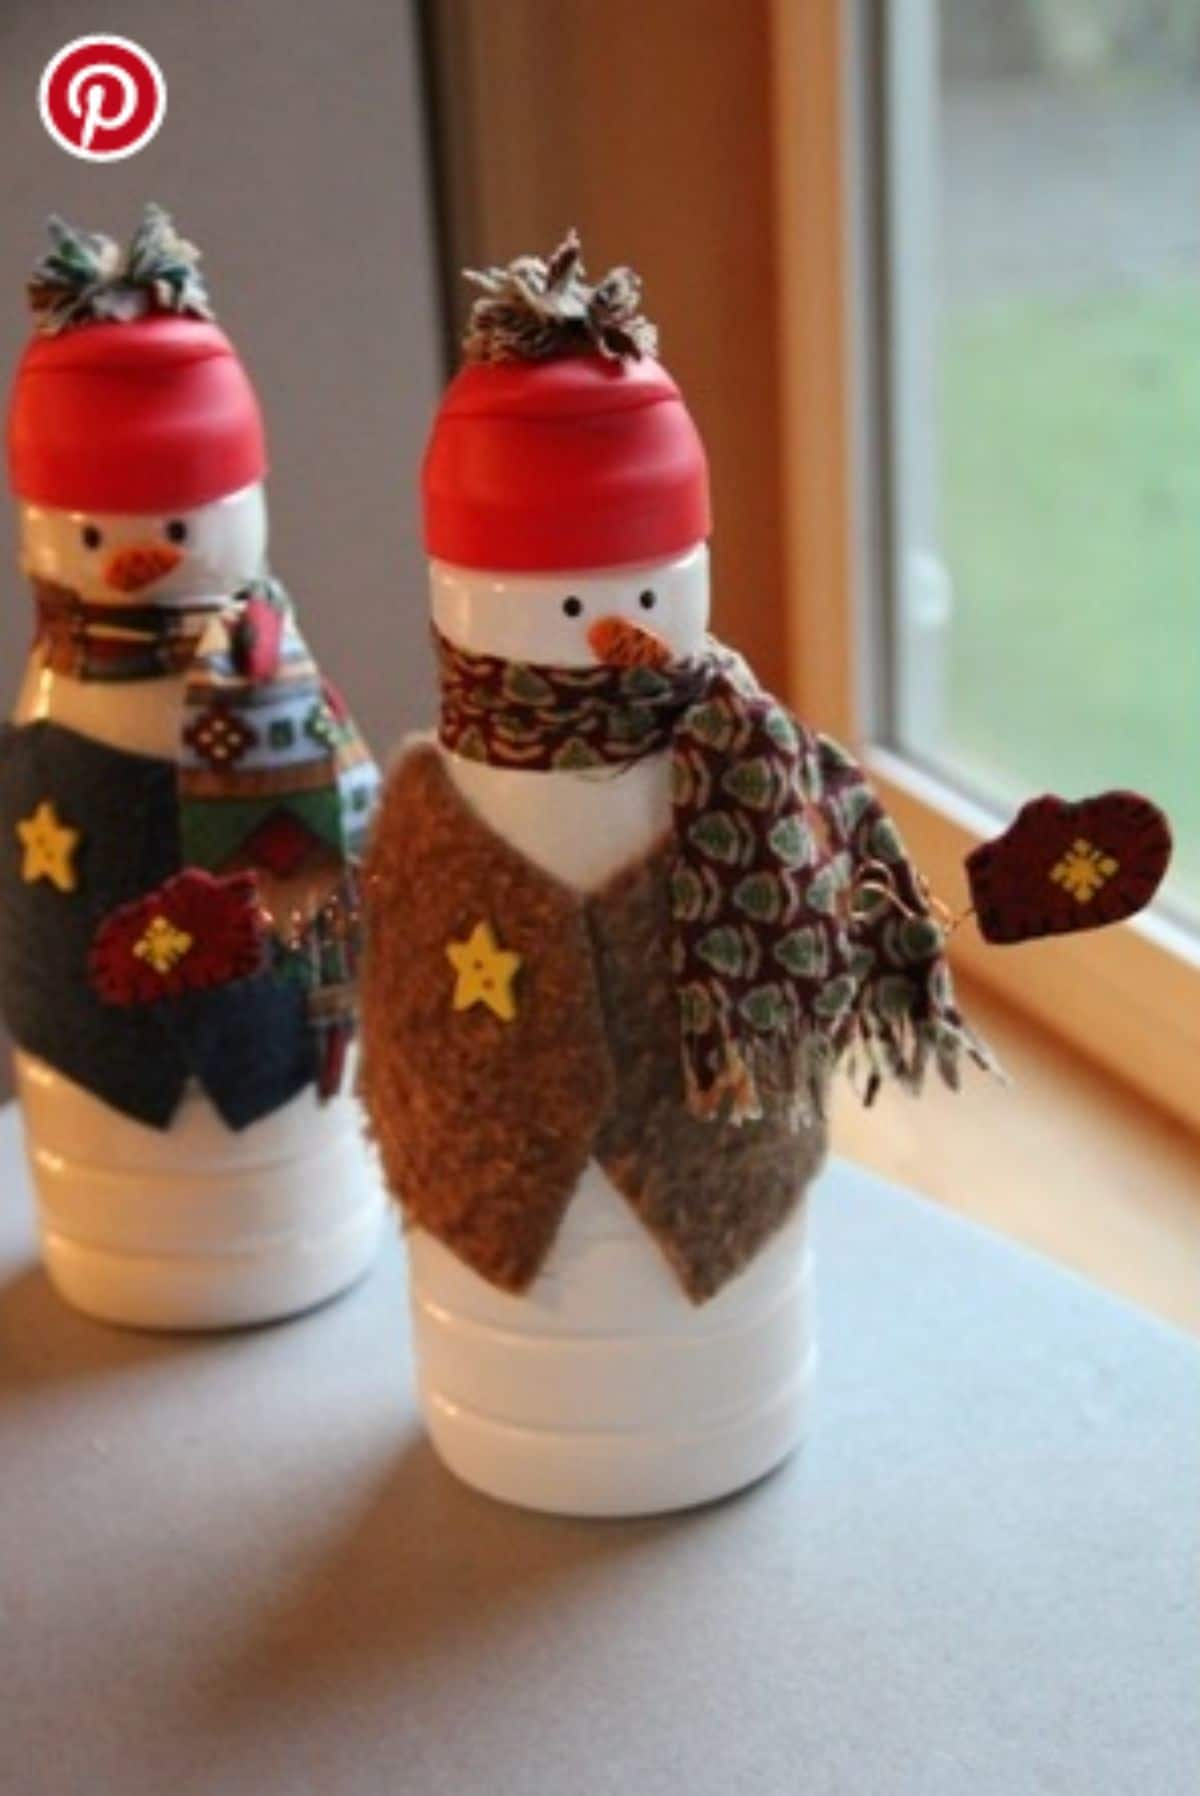 in front of a window are two creamer bottles decorated in material to look like snowmen